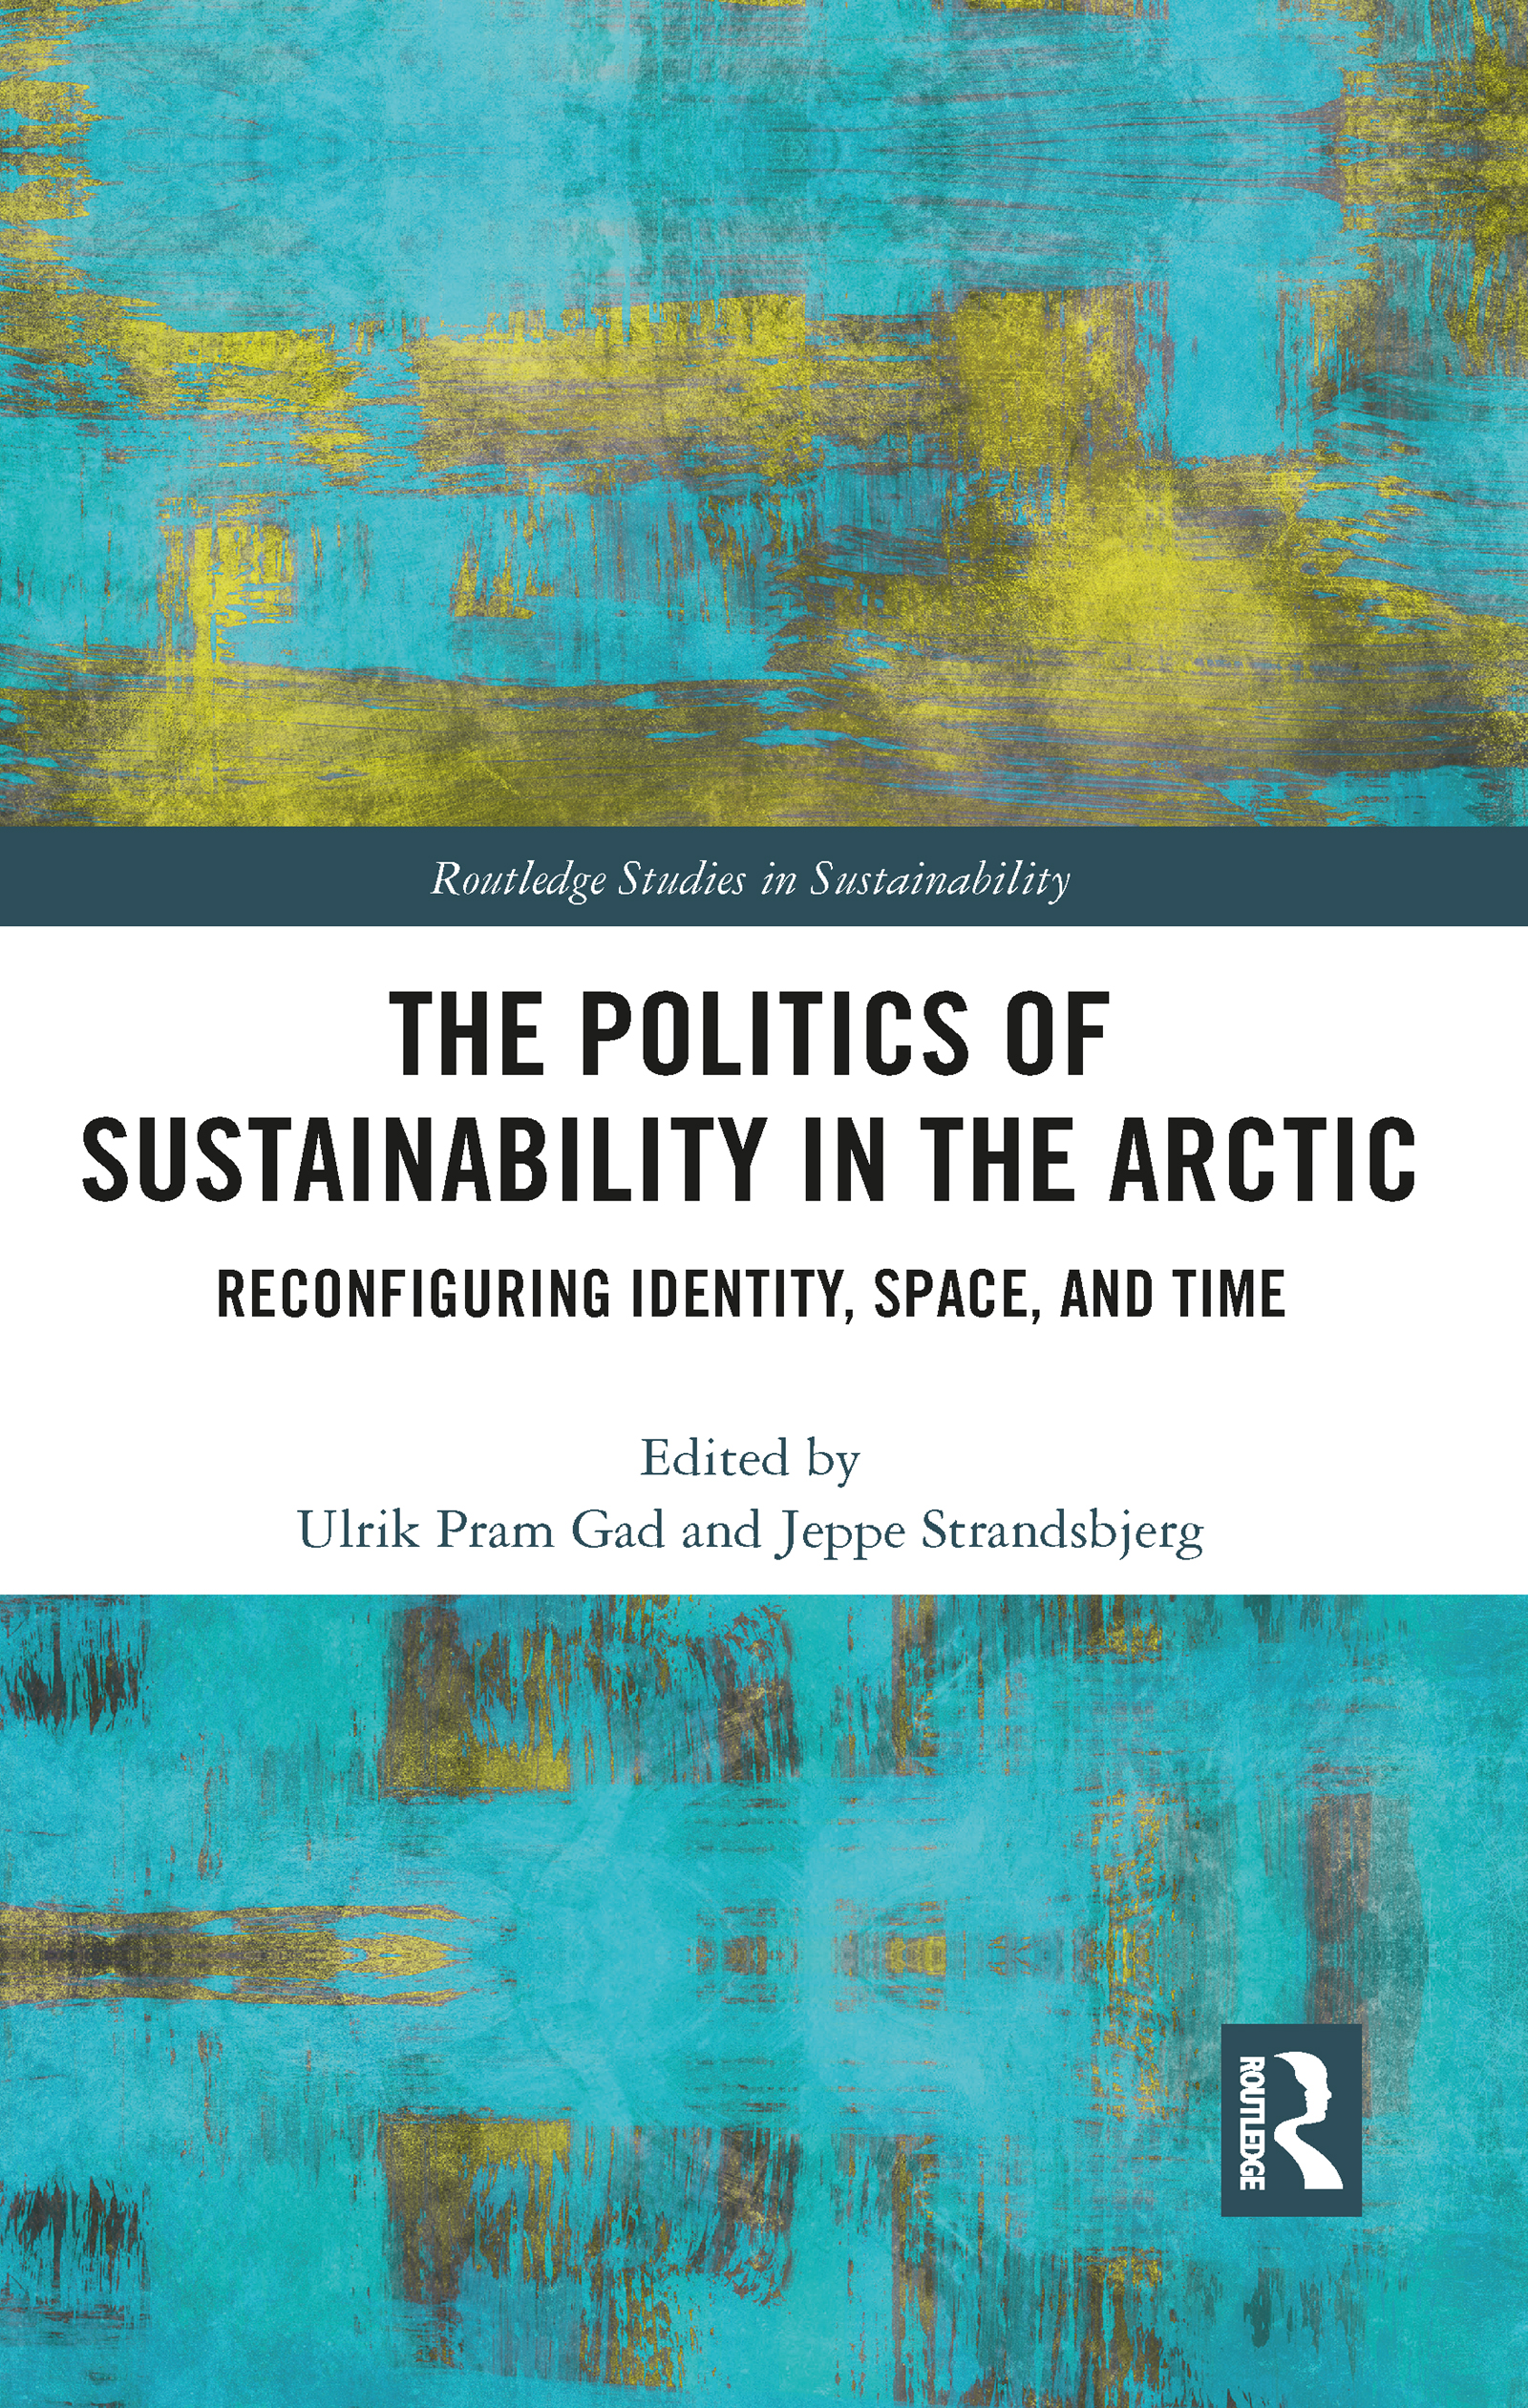 The Politics of Sustainability in the Arctic